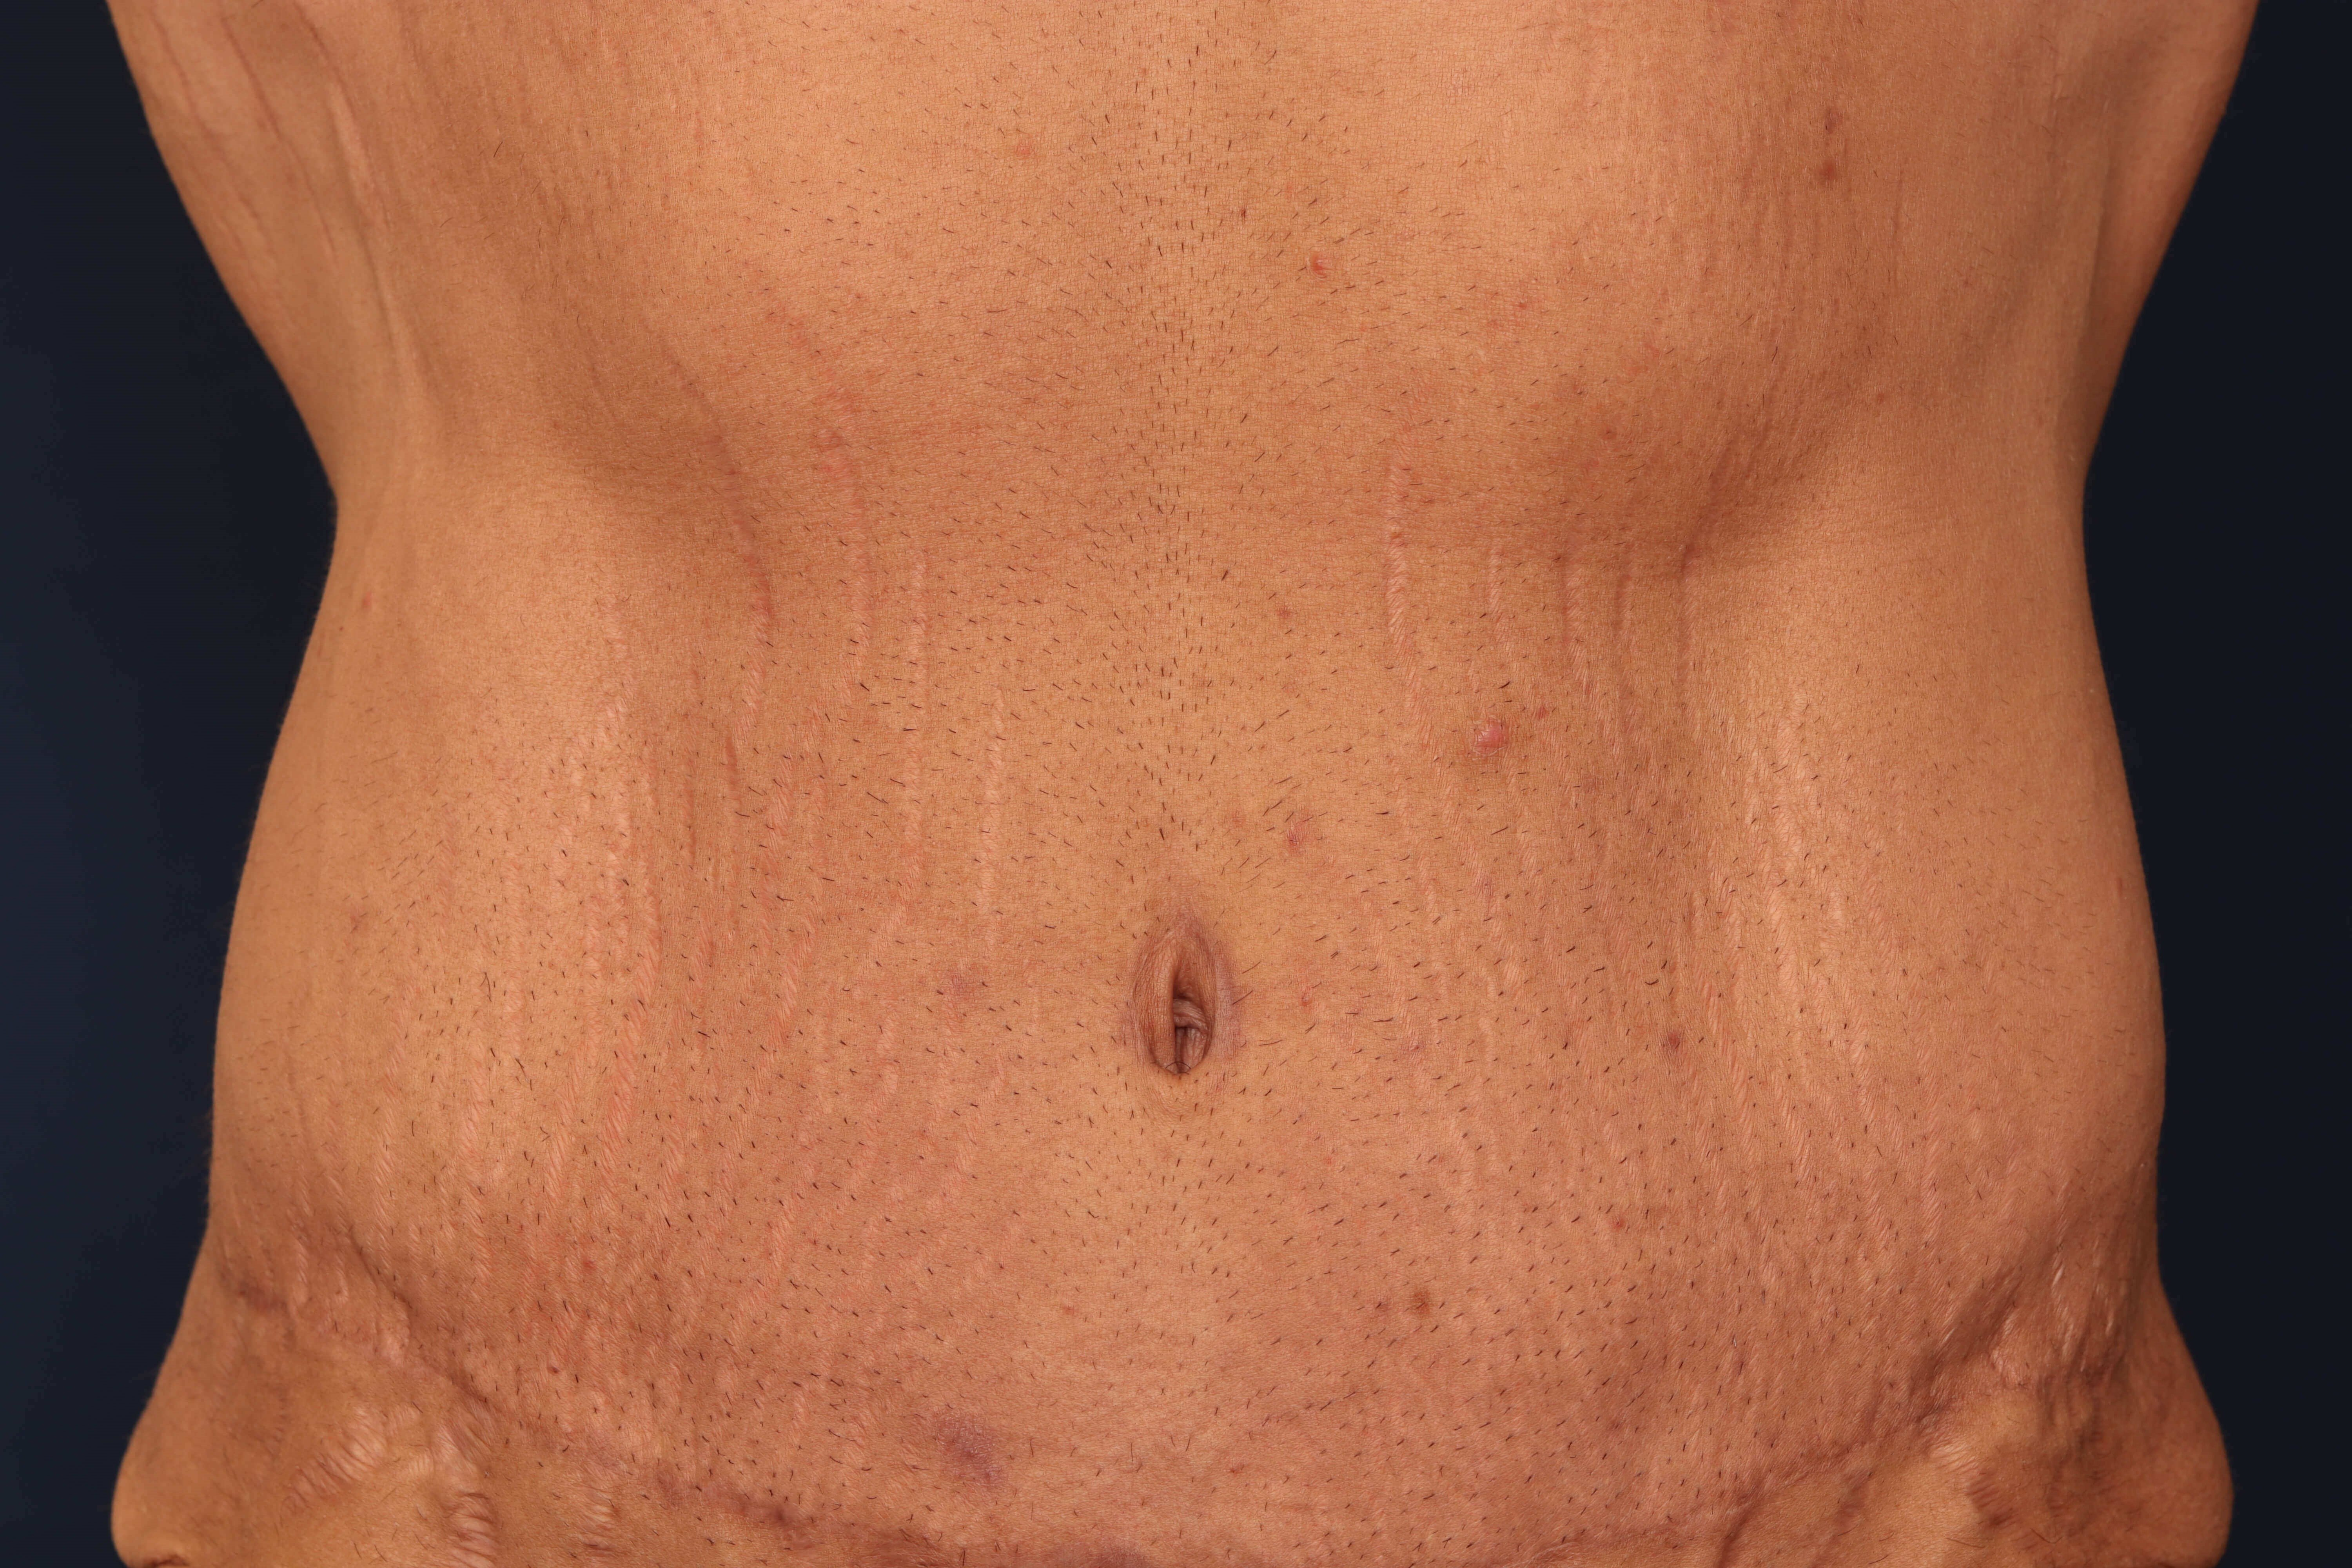 Tummy Tuck w/ Liposuction 7 months after